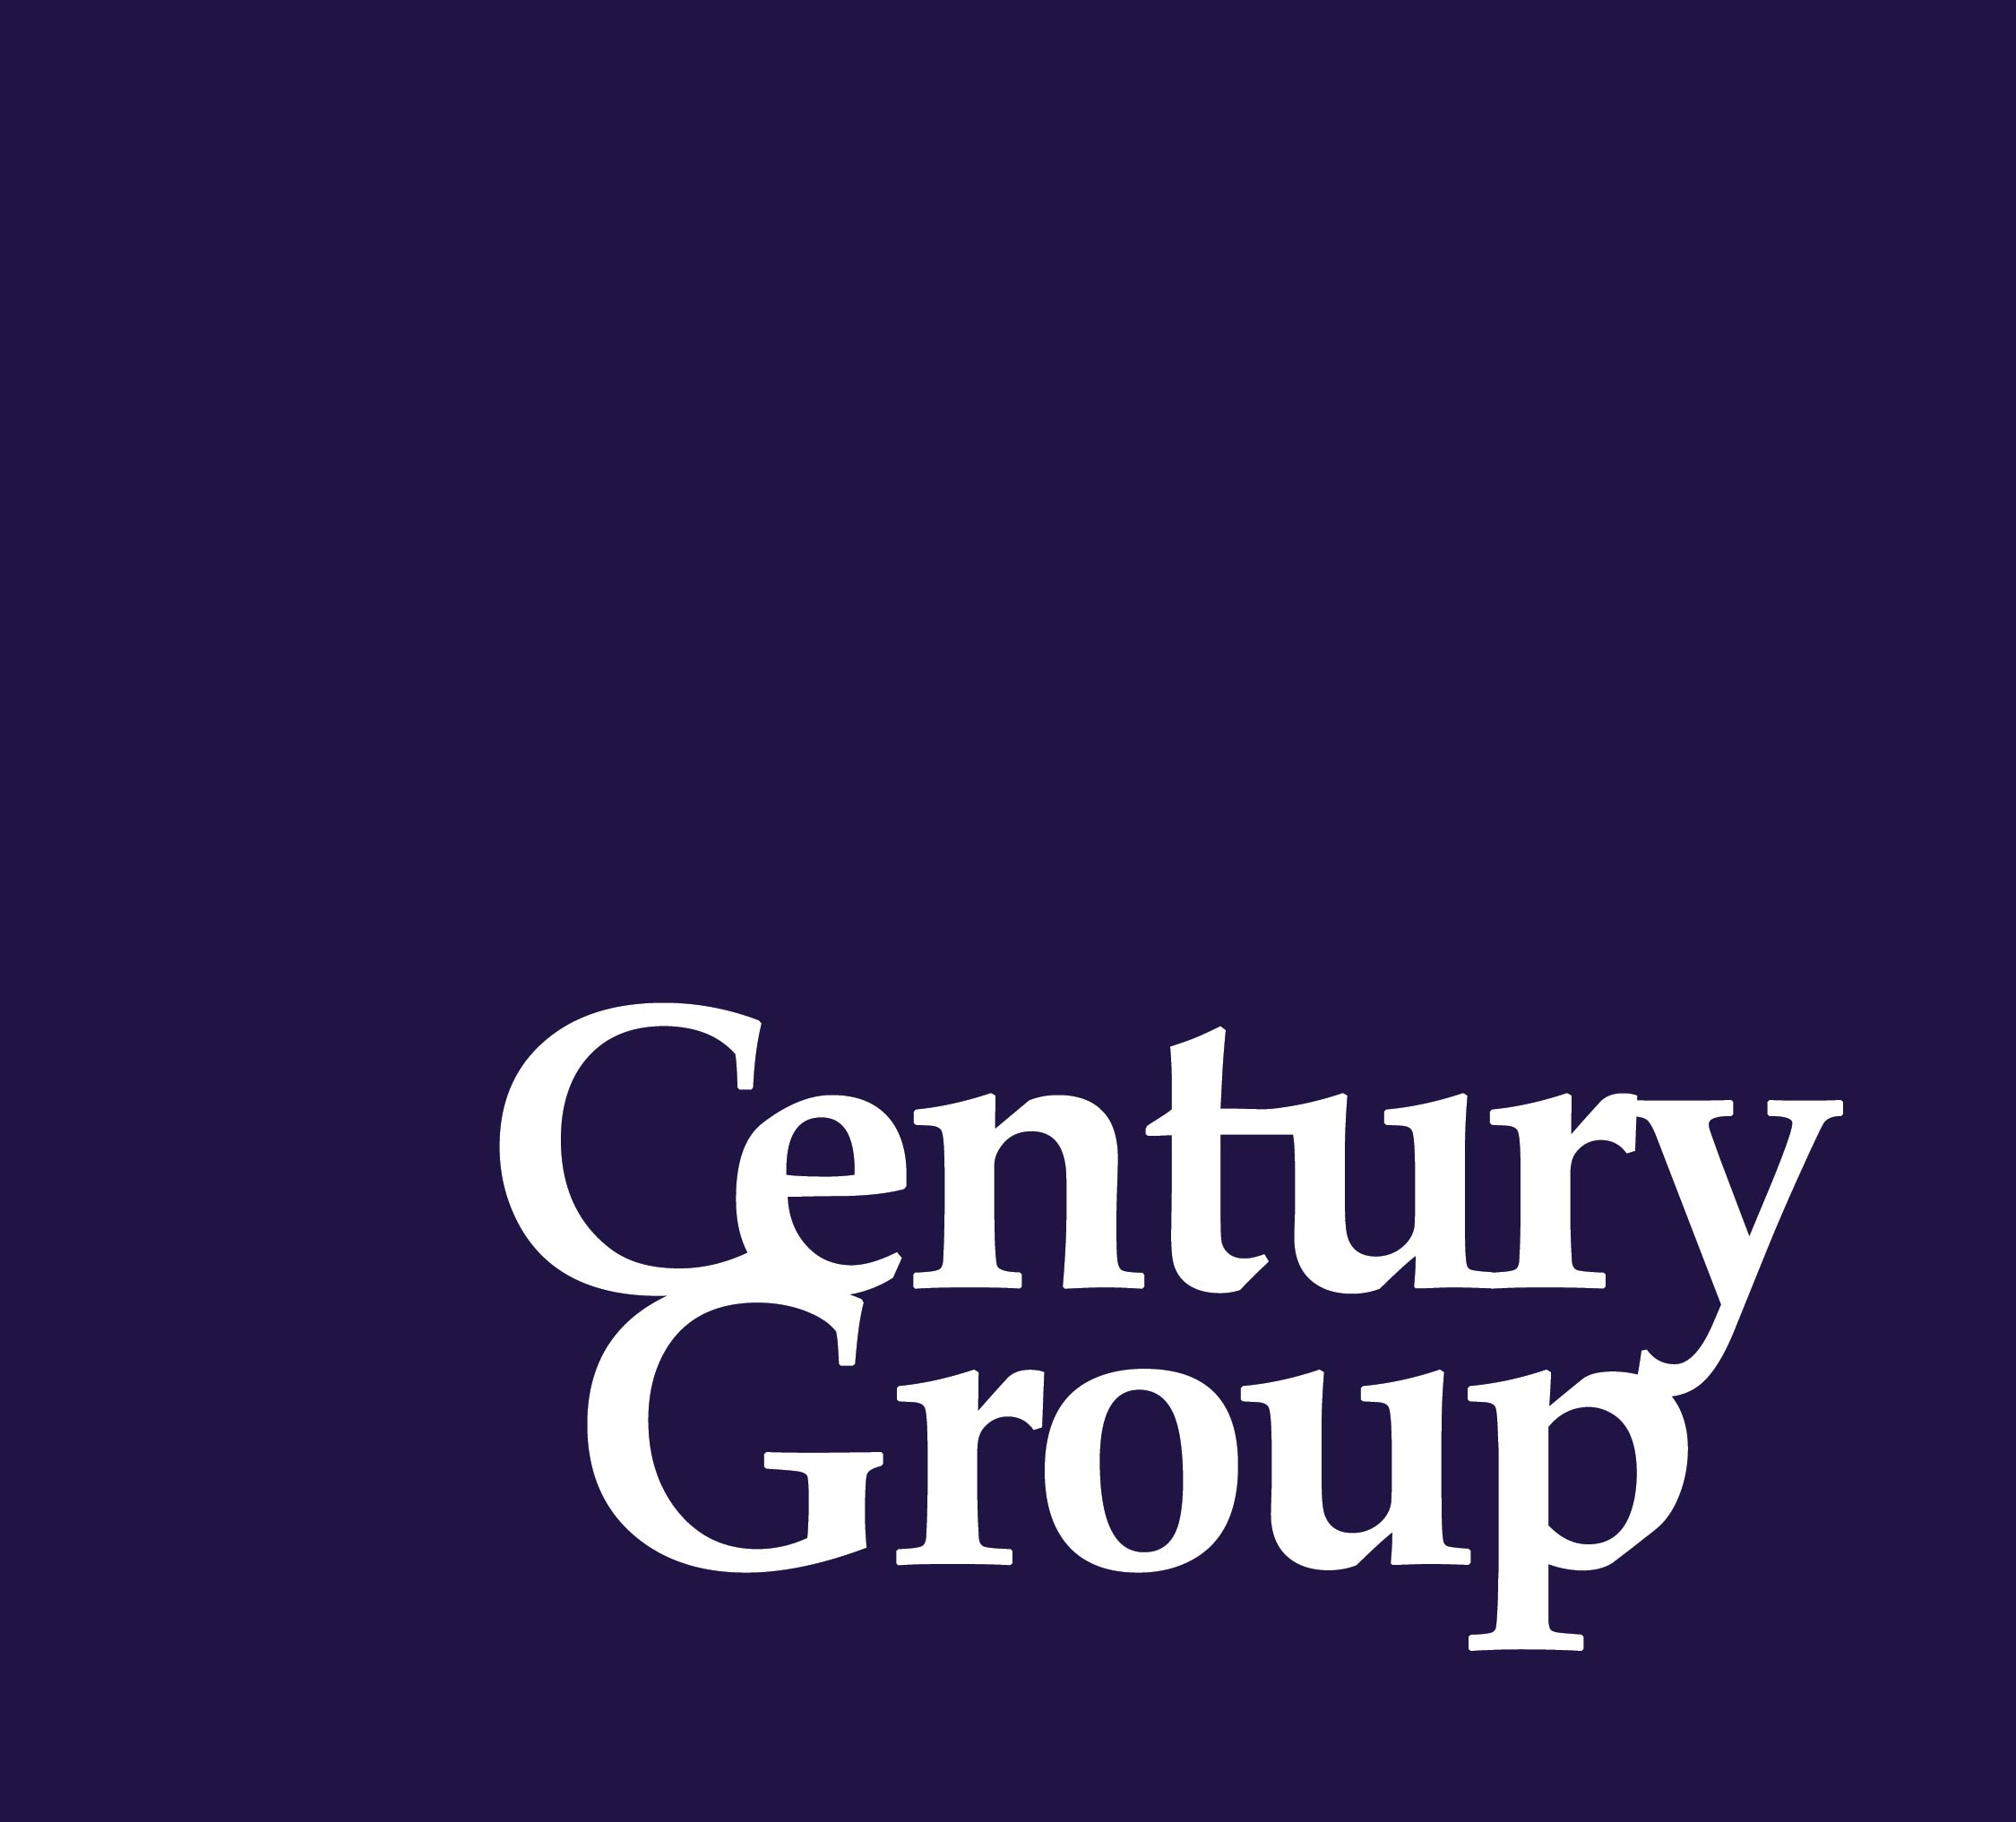 century group logo